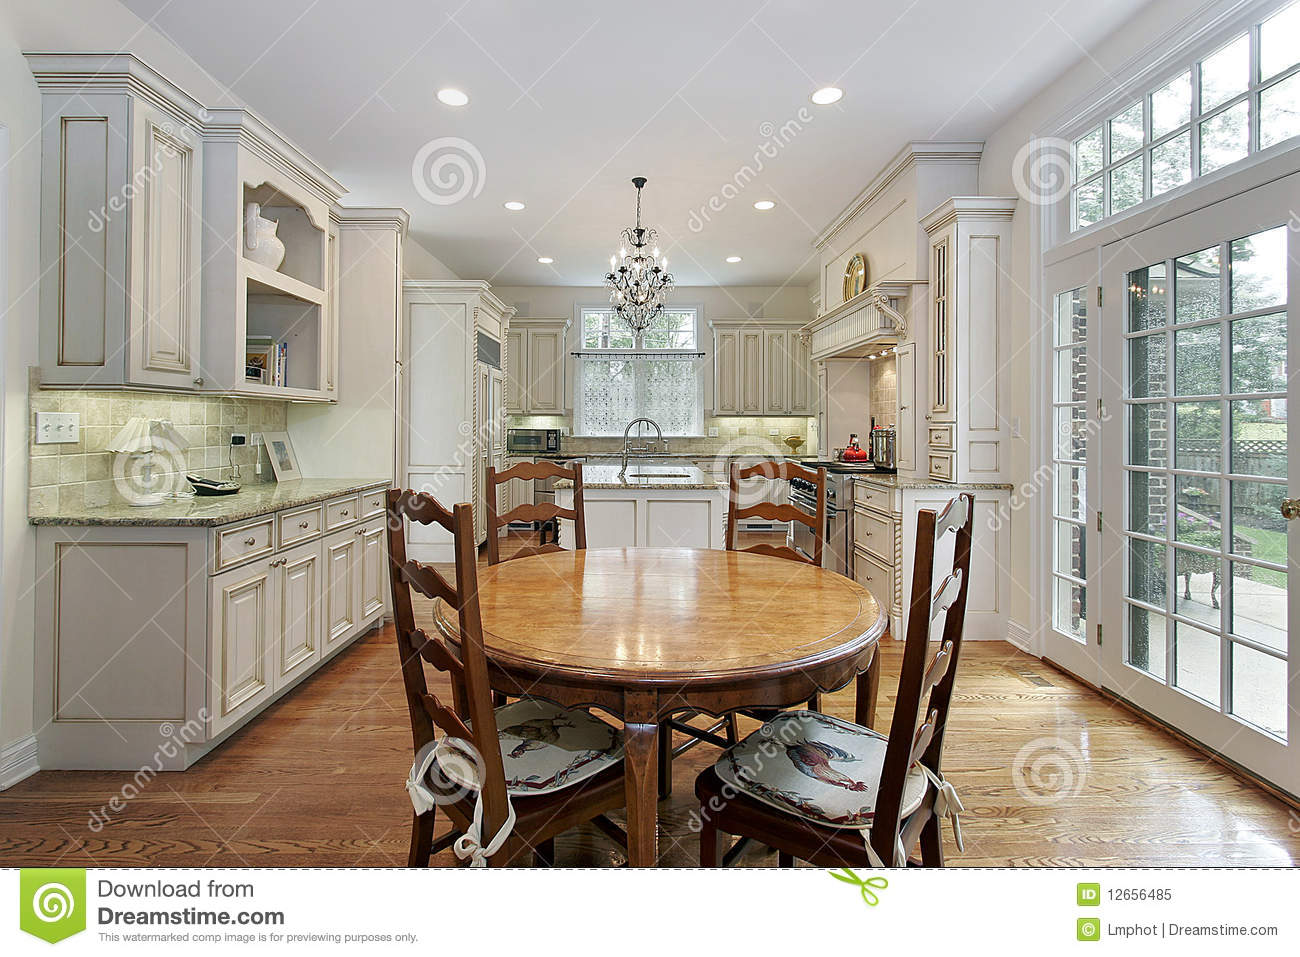 Kitchen With Island And Eating Area Royalty Free Stock Photo Image 12656485